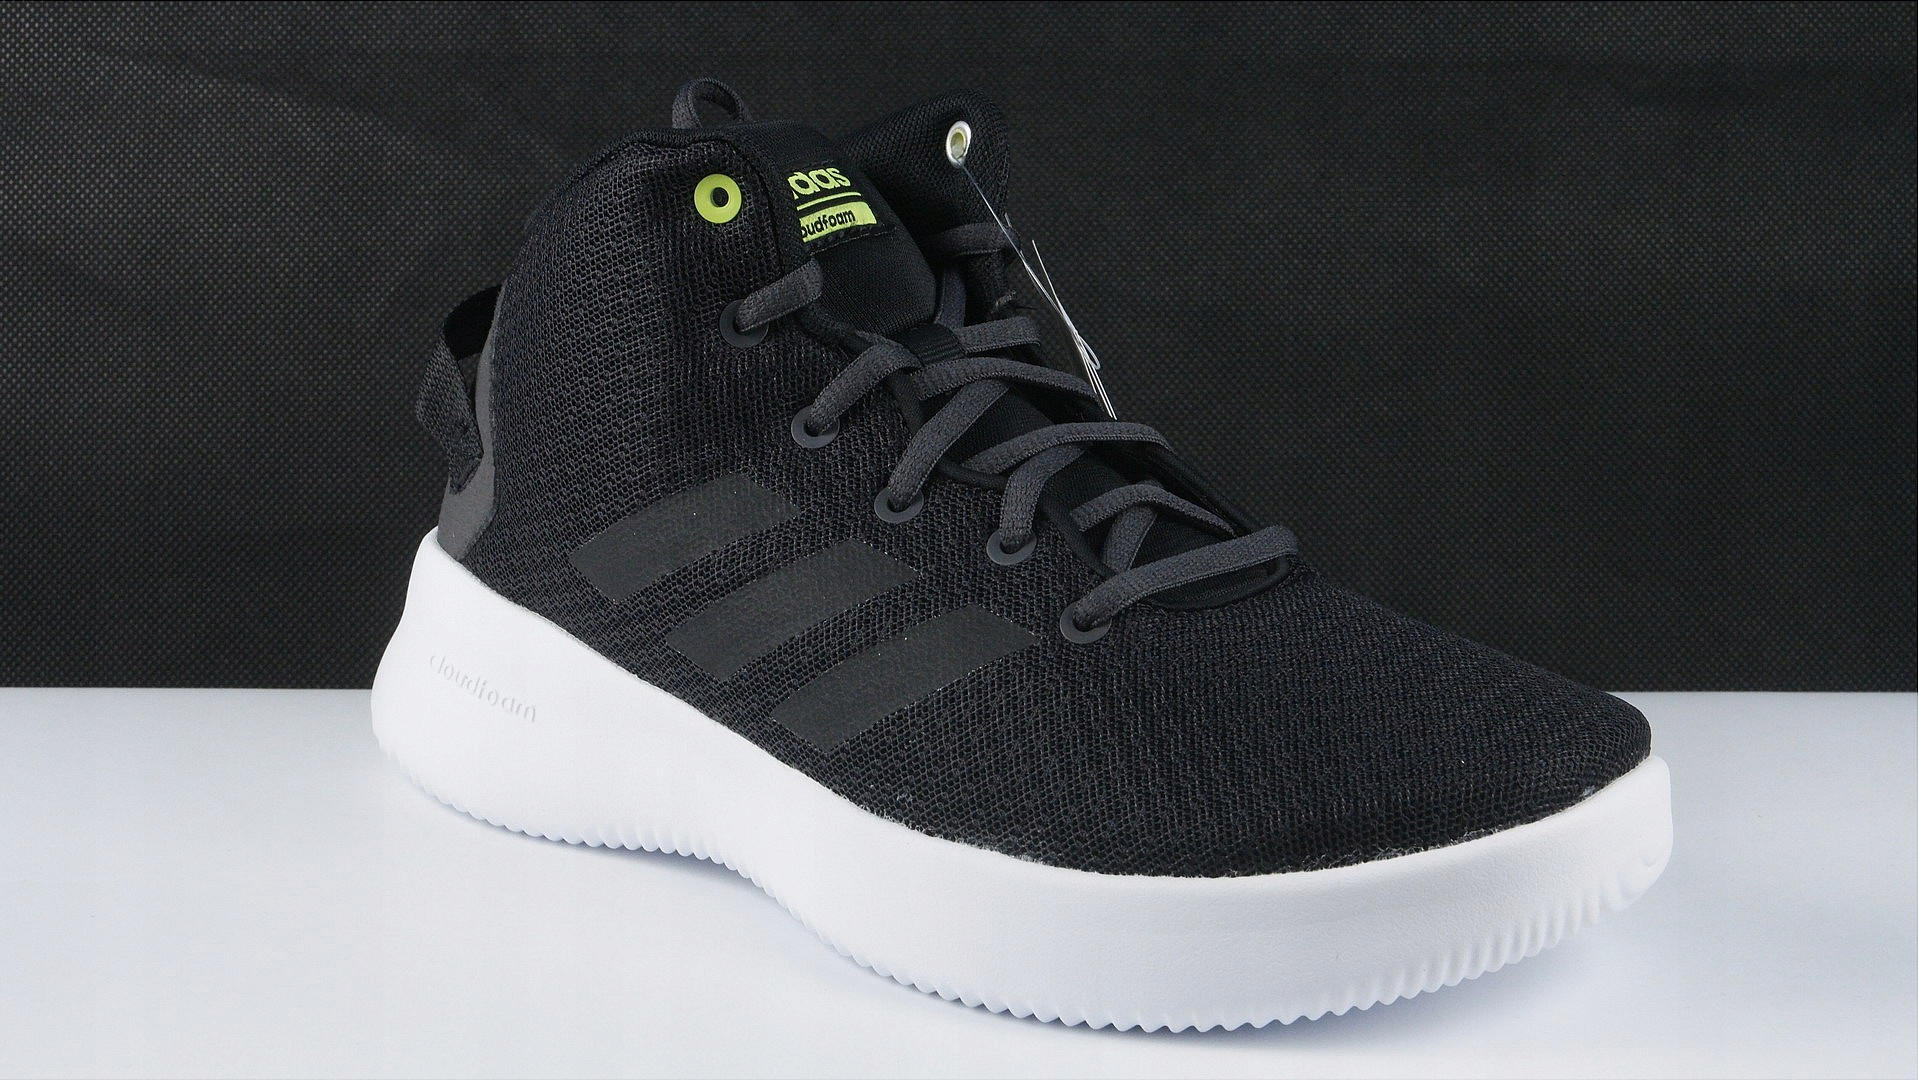 BUTY ADIDAS CF ALL COURT MID r.44 23